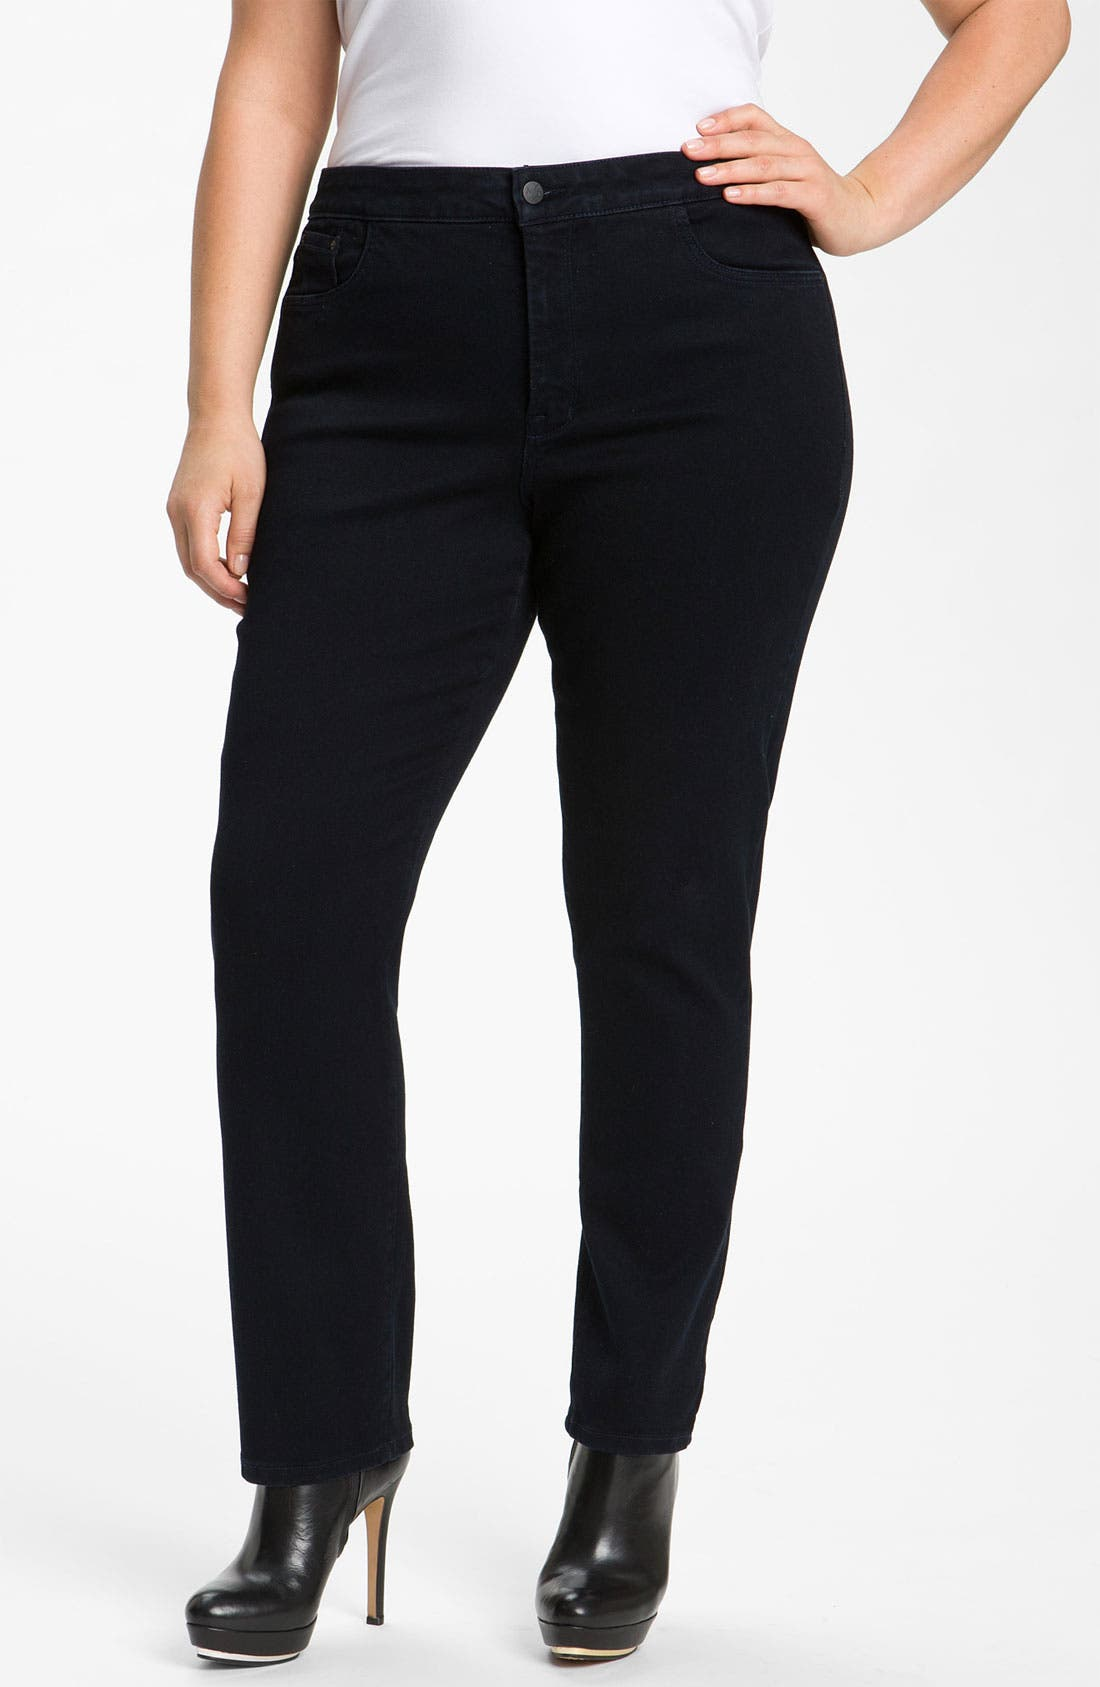 Alternate Image 1 Selected - NYDJ 'Jaclyn' Stretch Denim Leggings (Plus)